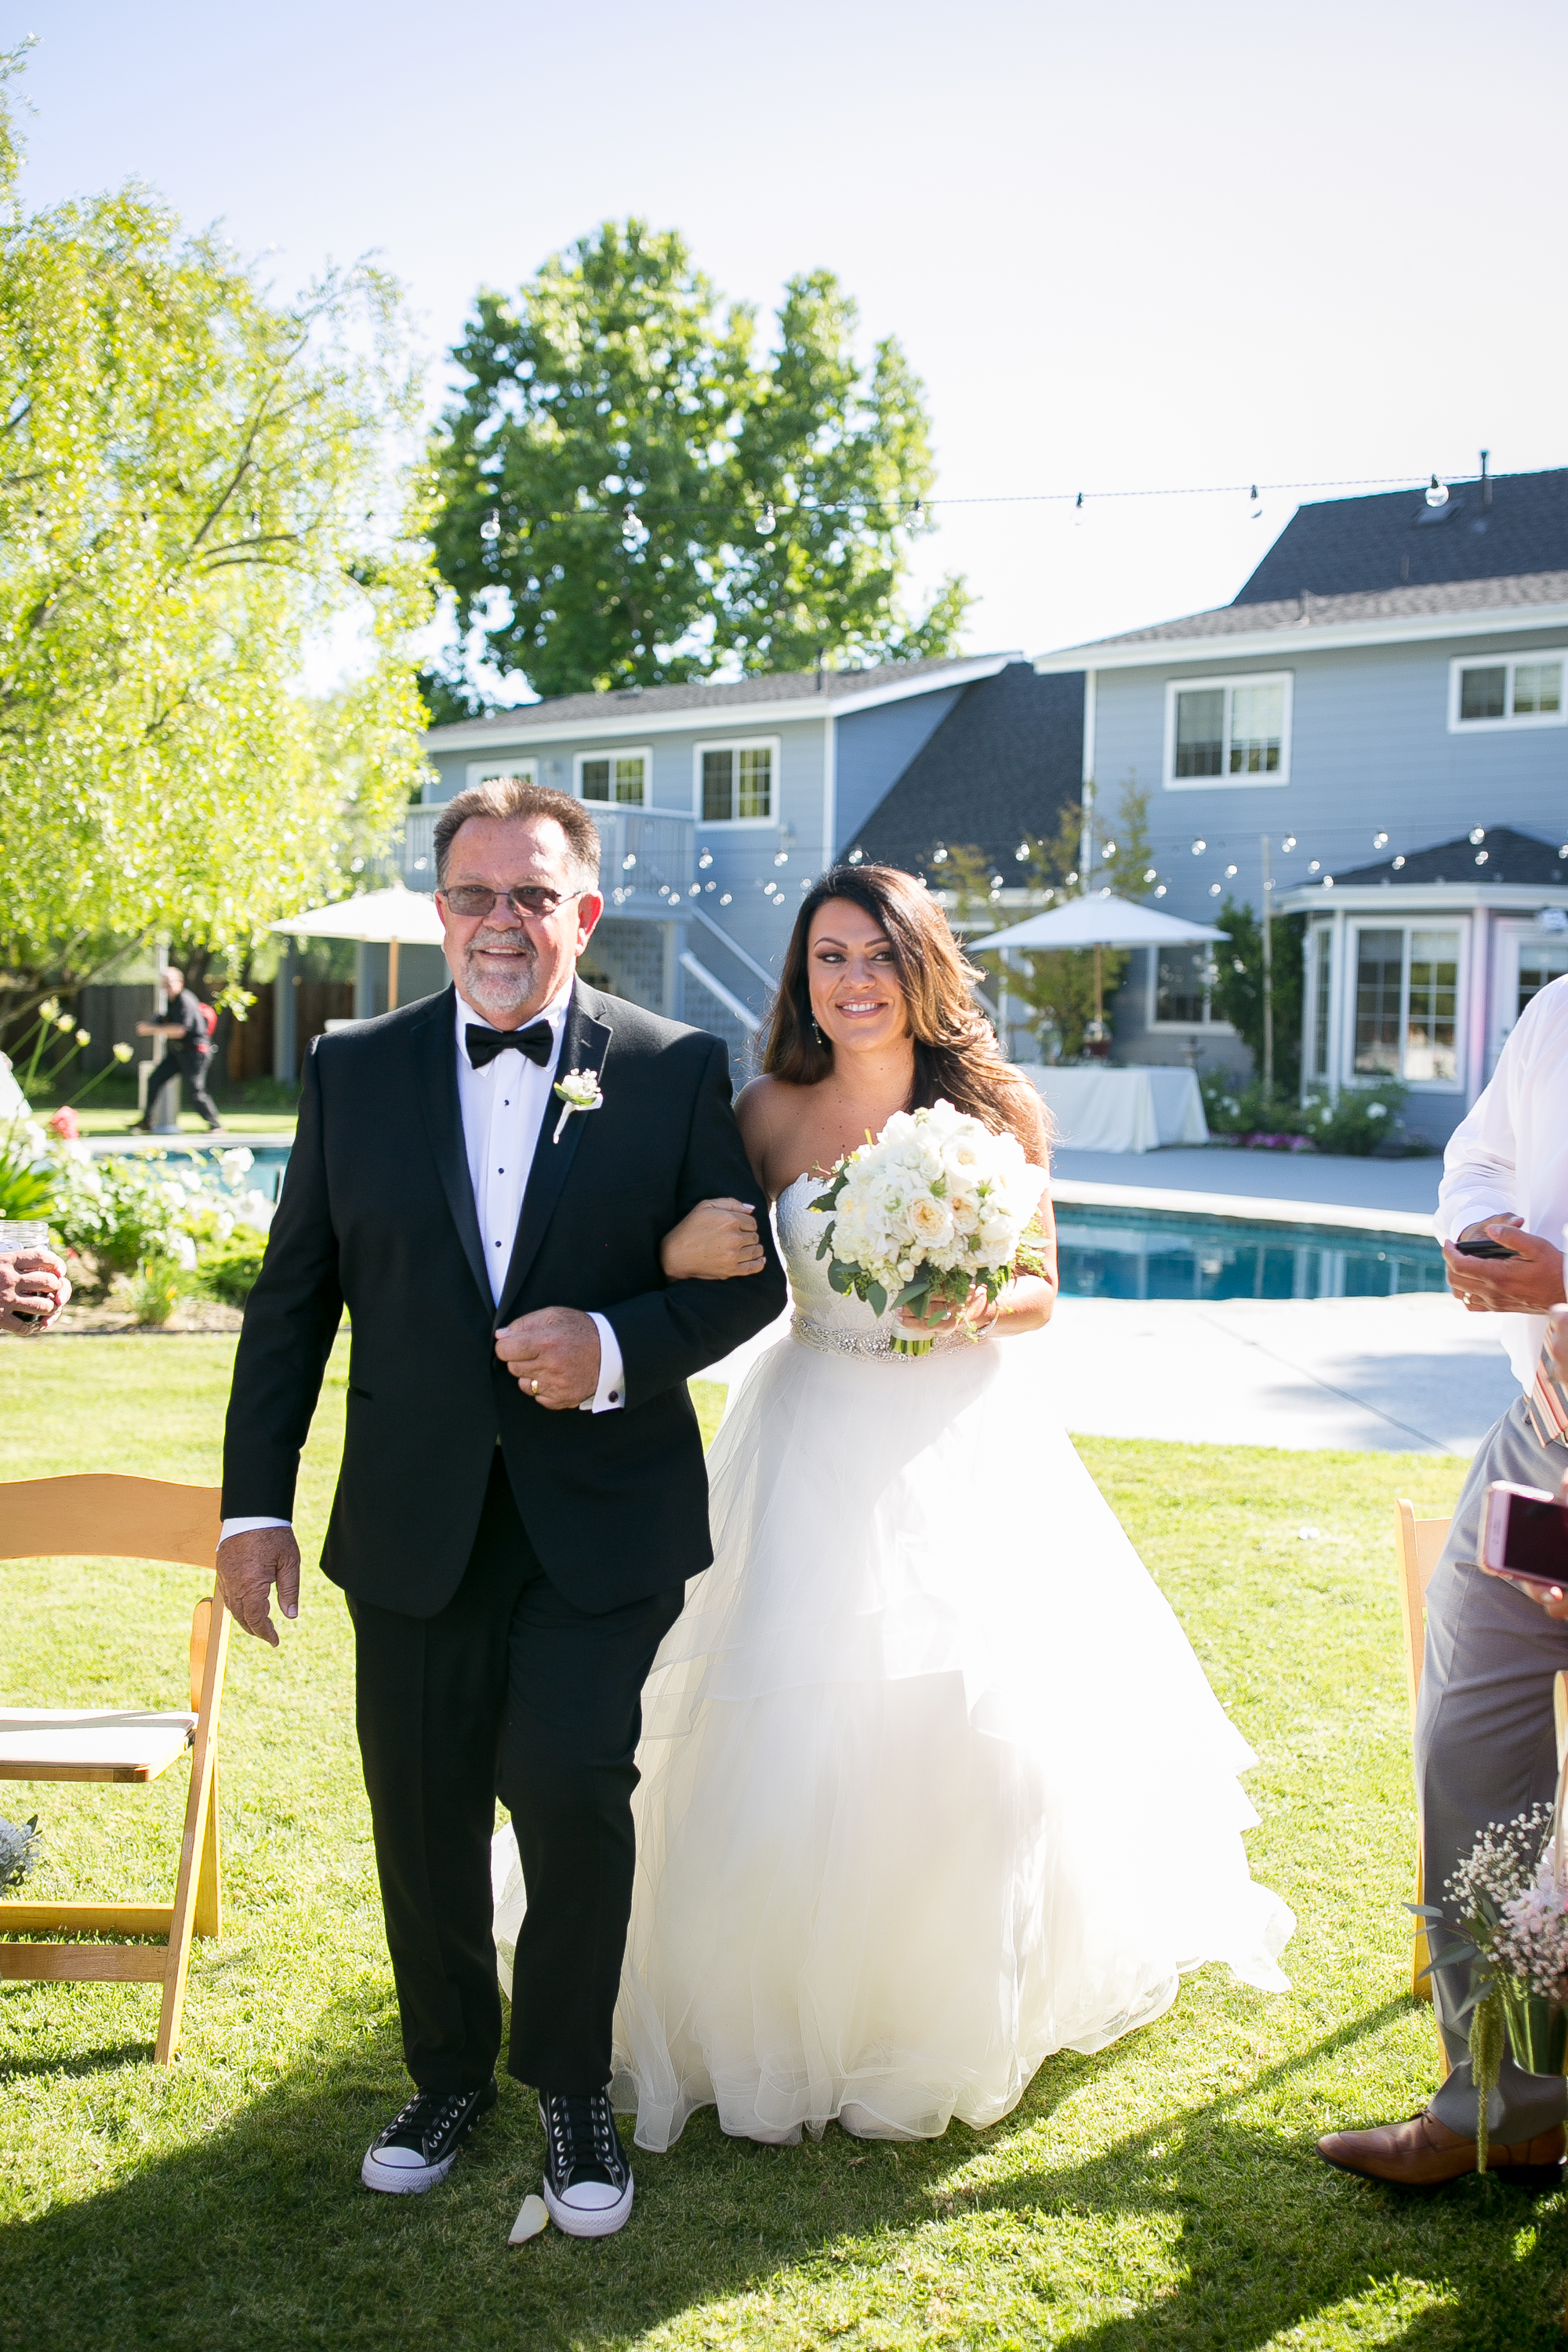 www.santabarbarawedding.com | Kelsey Crews Photography | Elegance in Bloom | Father Walks Bride Down the Aisle